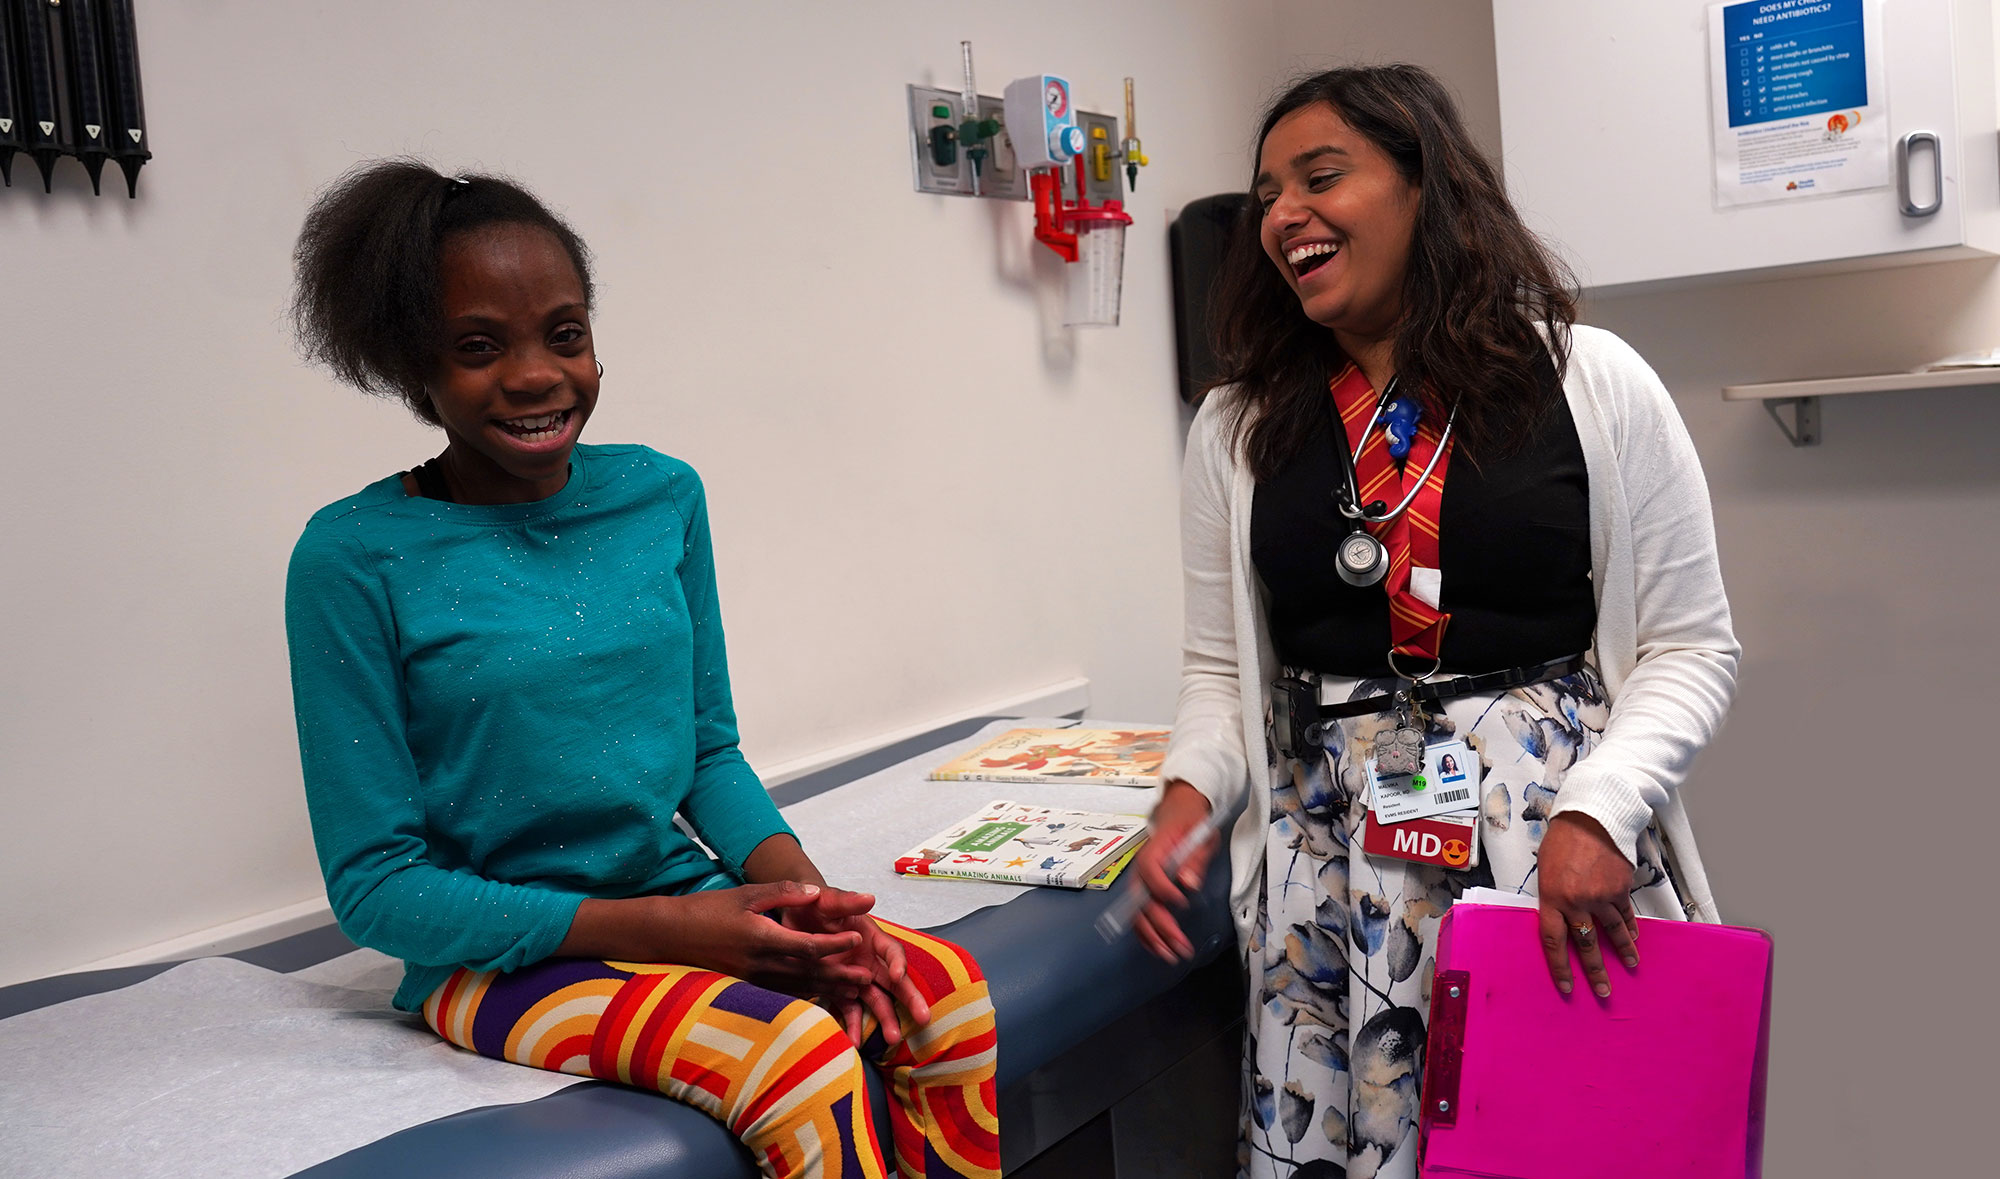 Dr. Kapoor laughs with a young girl, who is smiling while waiting for her checkup, in an exam room.